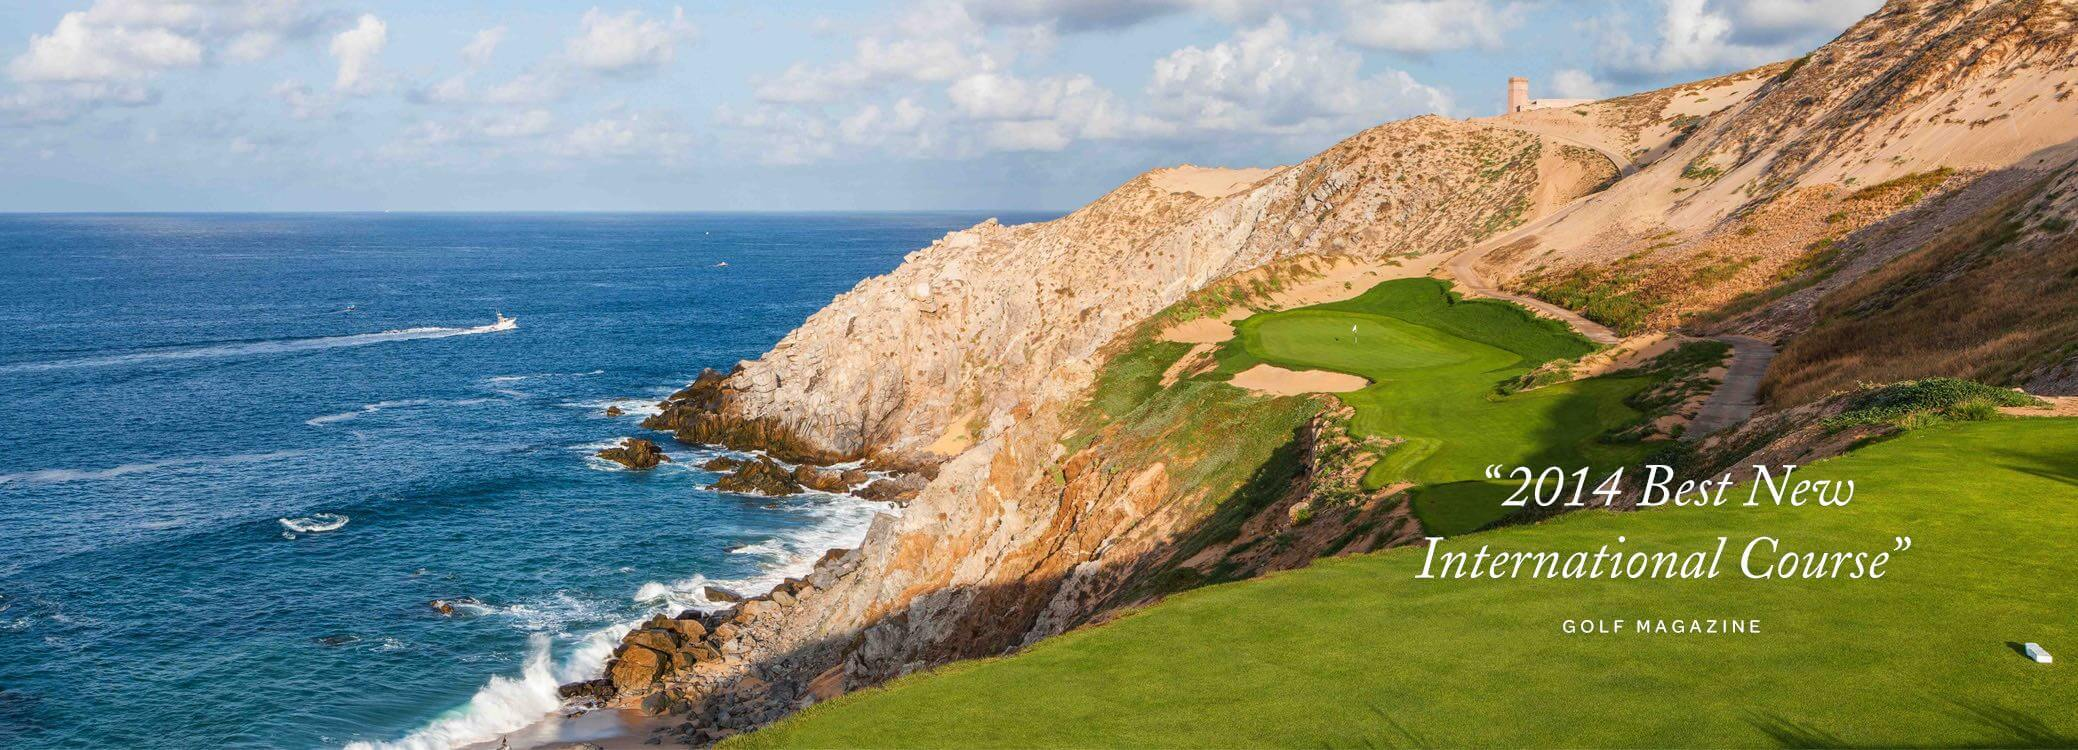 a gold course on the side of a cliff